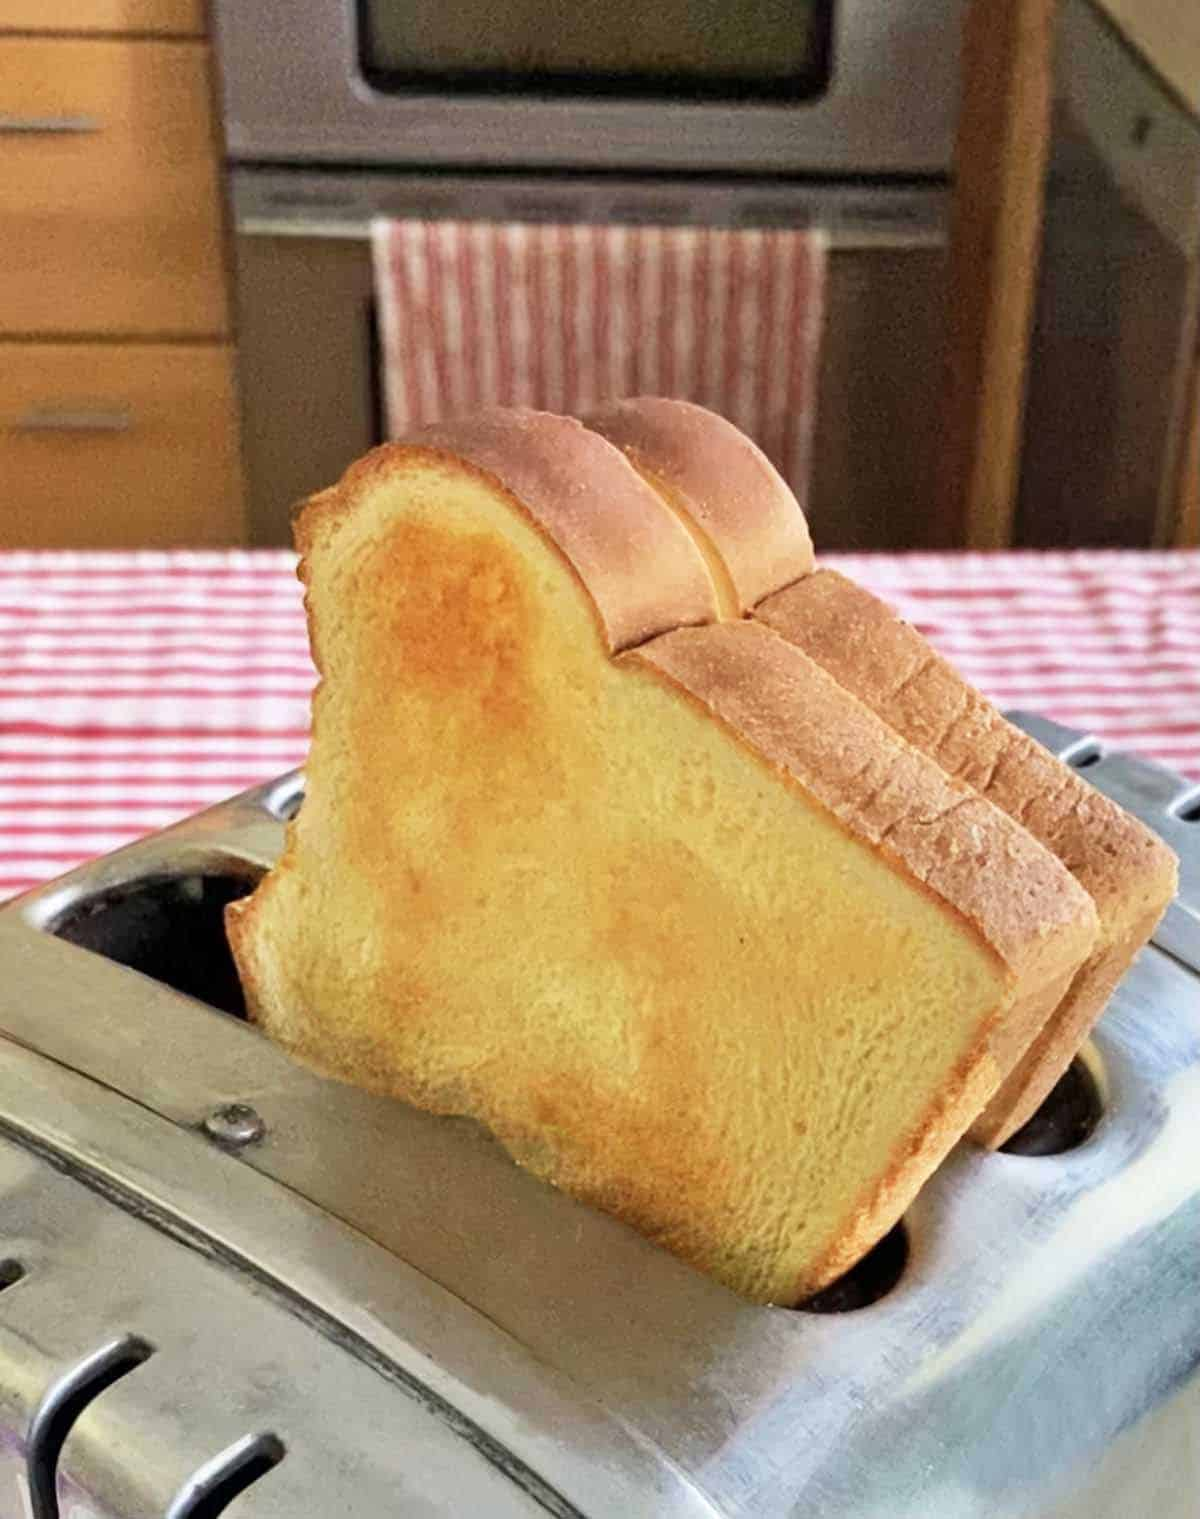 Two pieces of toasted bread popping out of a toaster in a kitchen.